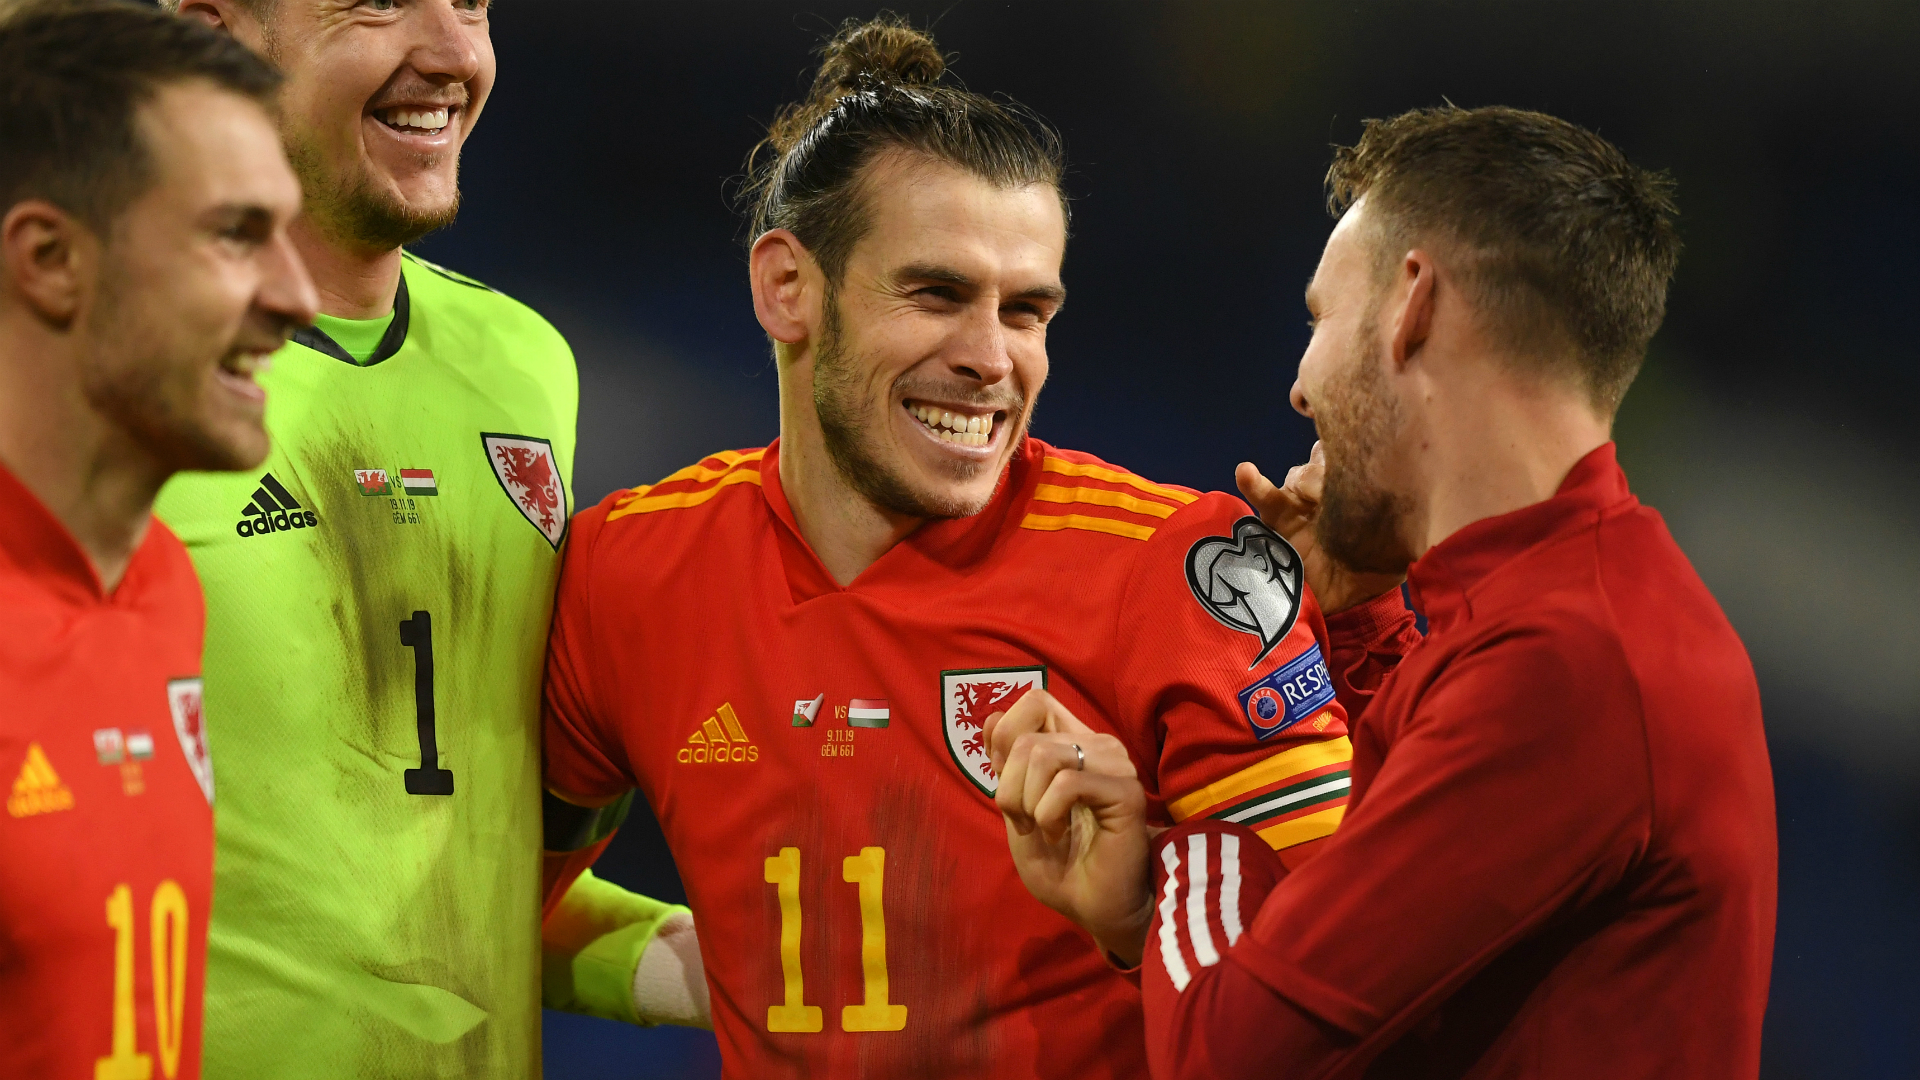 Wales, golf, Madrid... in that order – Bale celebrates Euro 2020 qualification